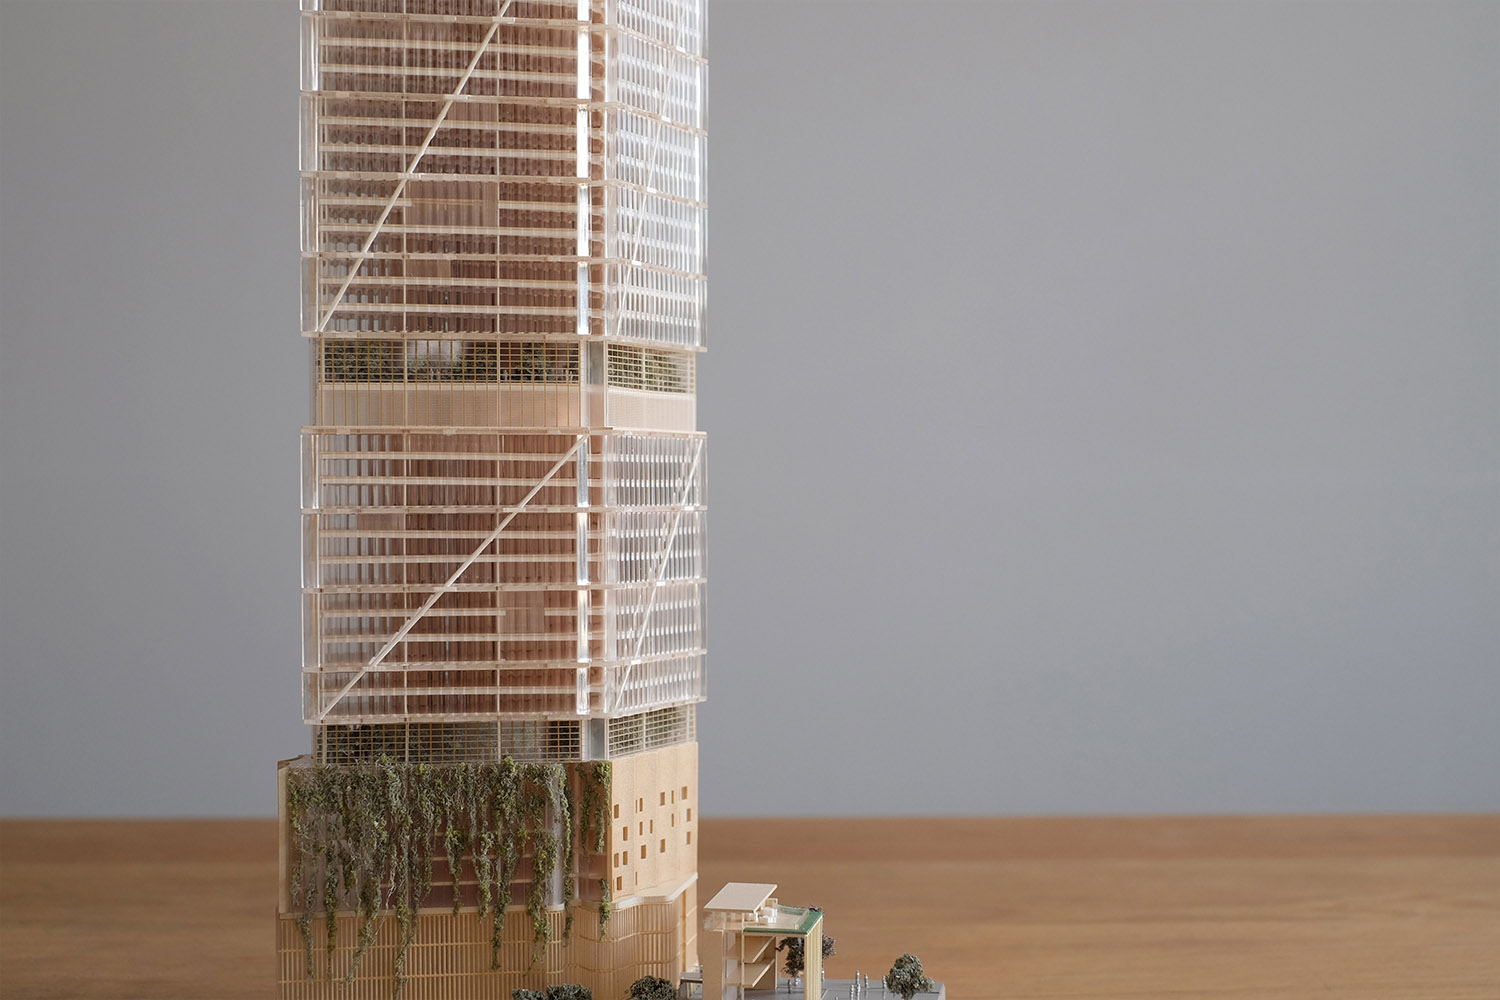 Architectural Competition Model